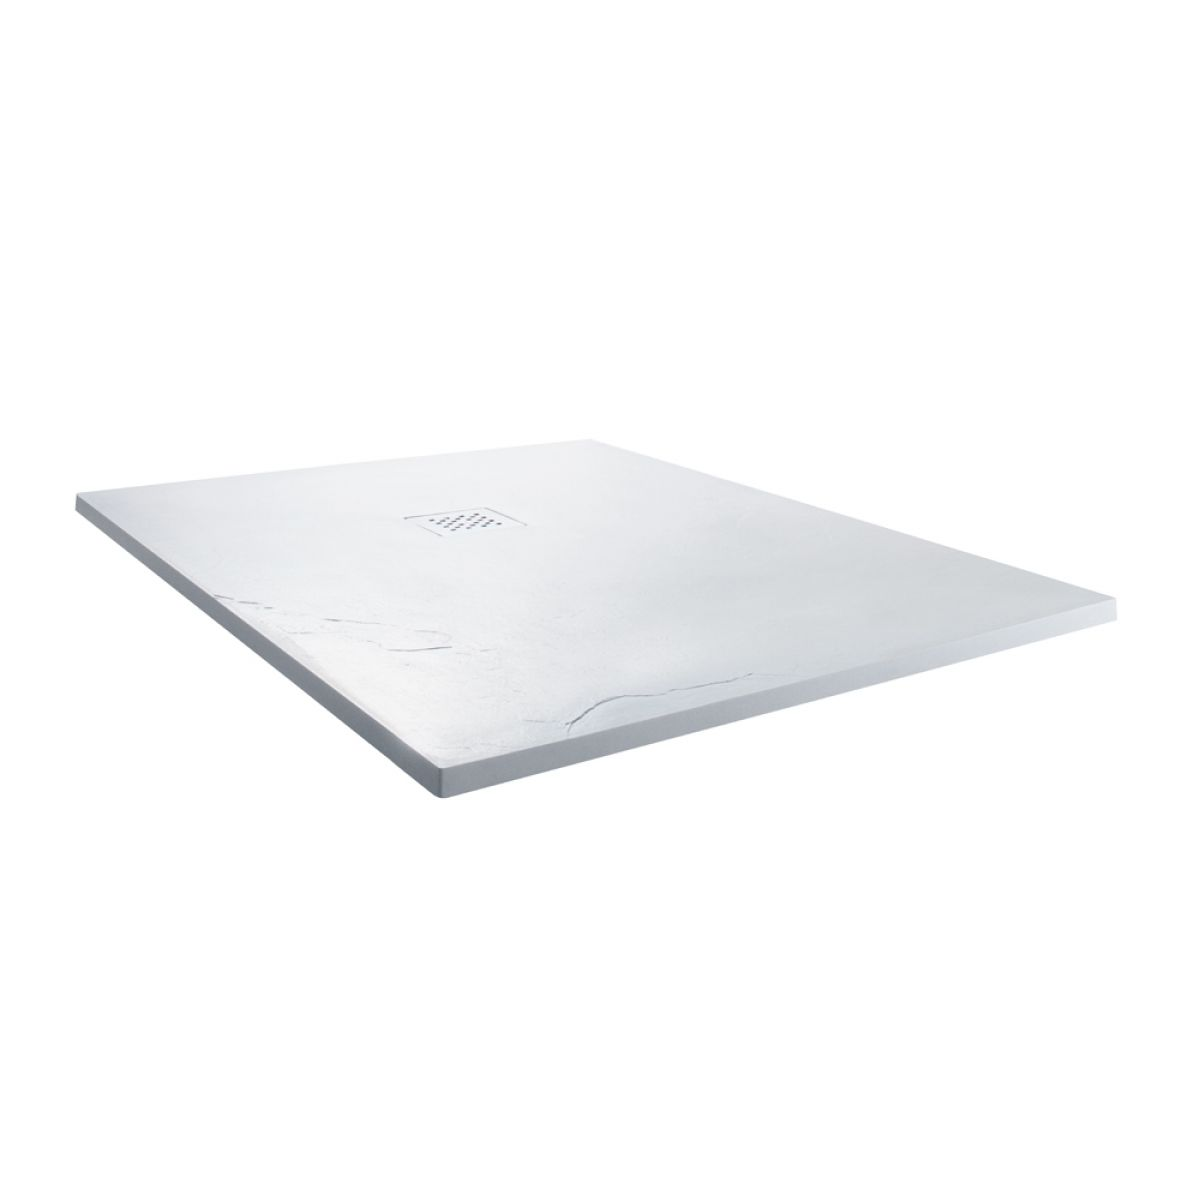 Cassellie Cass Stone White Slate Effect Square Shower Tray 900 x 900mm